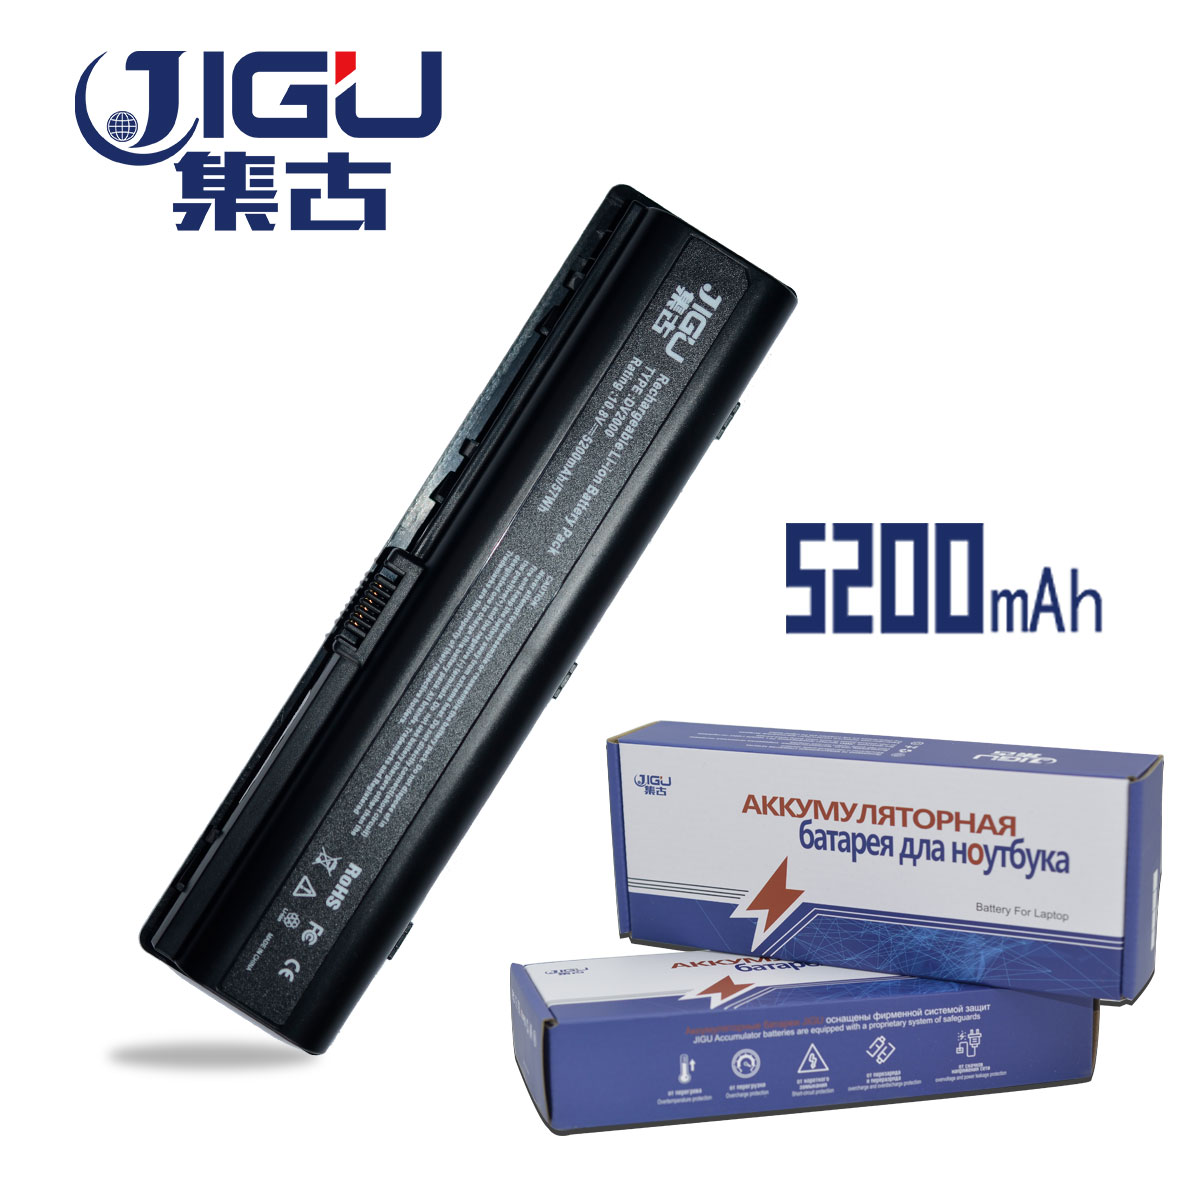 JIGU New Laptop Battery For HP COMPAQ Presario C700 V3000 F500 DV2000 HSTNN-DB42 HSTNN-LB42 HSTNN-LB42 HSTNN-OB31 hp dv9000 dv6000 dv2000 v3000